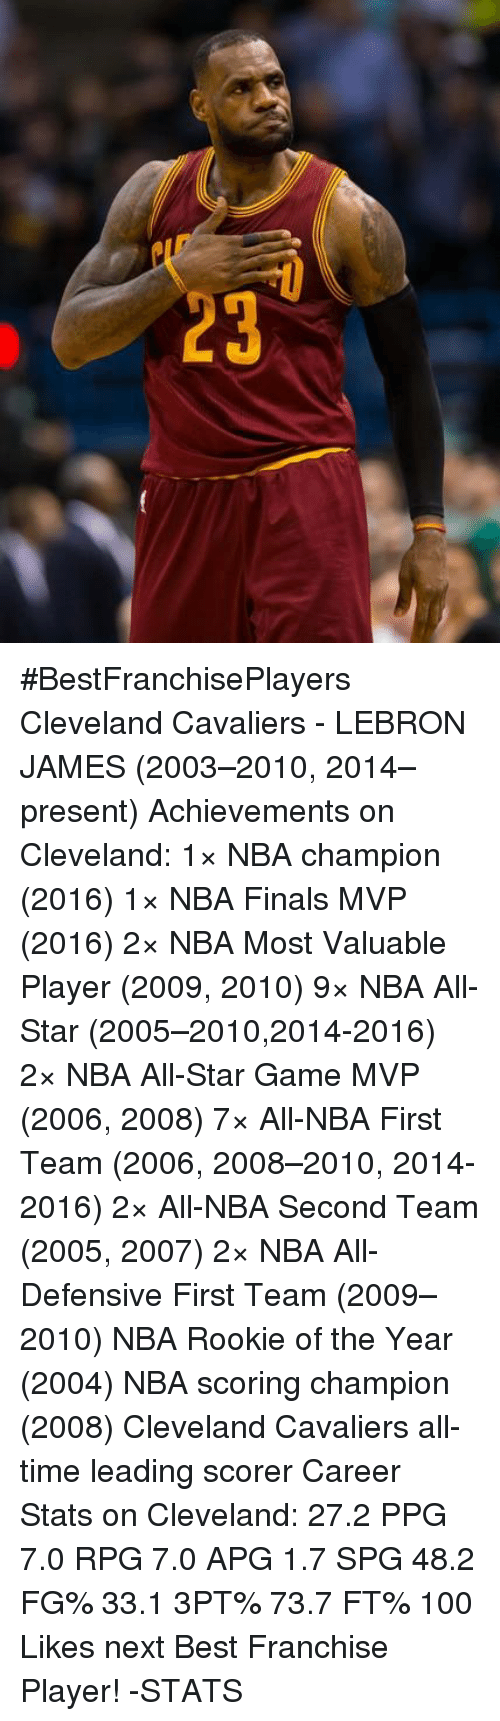 NBA All-Star Game: 3 #BestFranchisePlayers  Cleveland Cavaliers - LEBRON JAMES (2003–2010, 2014–present)  Achievements on Cleveland: 1× NBA champion (2016) 1× NBA Finals MVP (2016) 2× NBA Most Valuable Player (2009, 2010) 9× NBA All-Star (2005–2010,2014-2016) 2× NBA All-Star Game MVP (2006, 2008) 7× All-NBA First Team (2006, 2008–2010, 2014-2016) 2× All-NBA Second Team (2005, 2007) 2× NBA All-Defensive First Team (2009–2010) NBA Rookie of the Year (2004) NBA scoring champion (2008) Cleveland Cavaliers all-time leading scorer  Career Stats on Cleveland: 27.2 PPG 7.0 RPG 7.0 APG 1.7 SPG 48.2 FG% 33.1 3PT% 73.7 FT%  100 Likes next Best Franchise Player!  -STATS